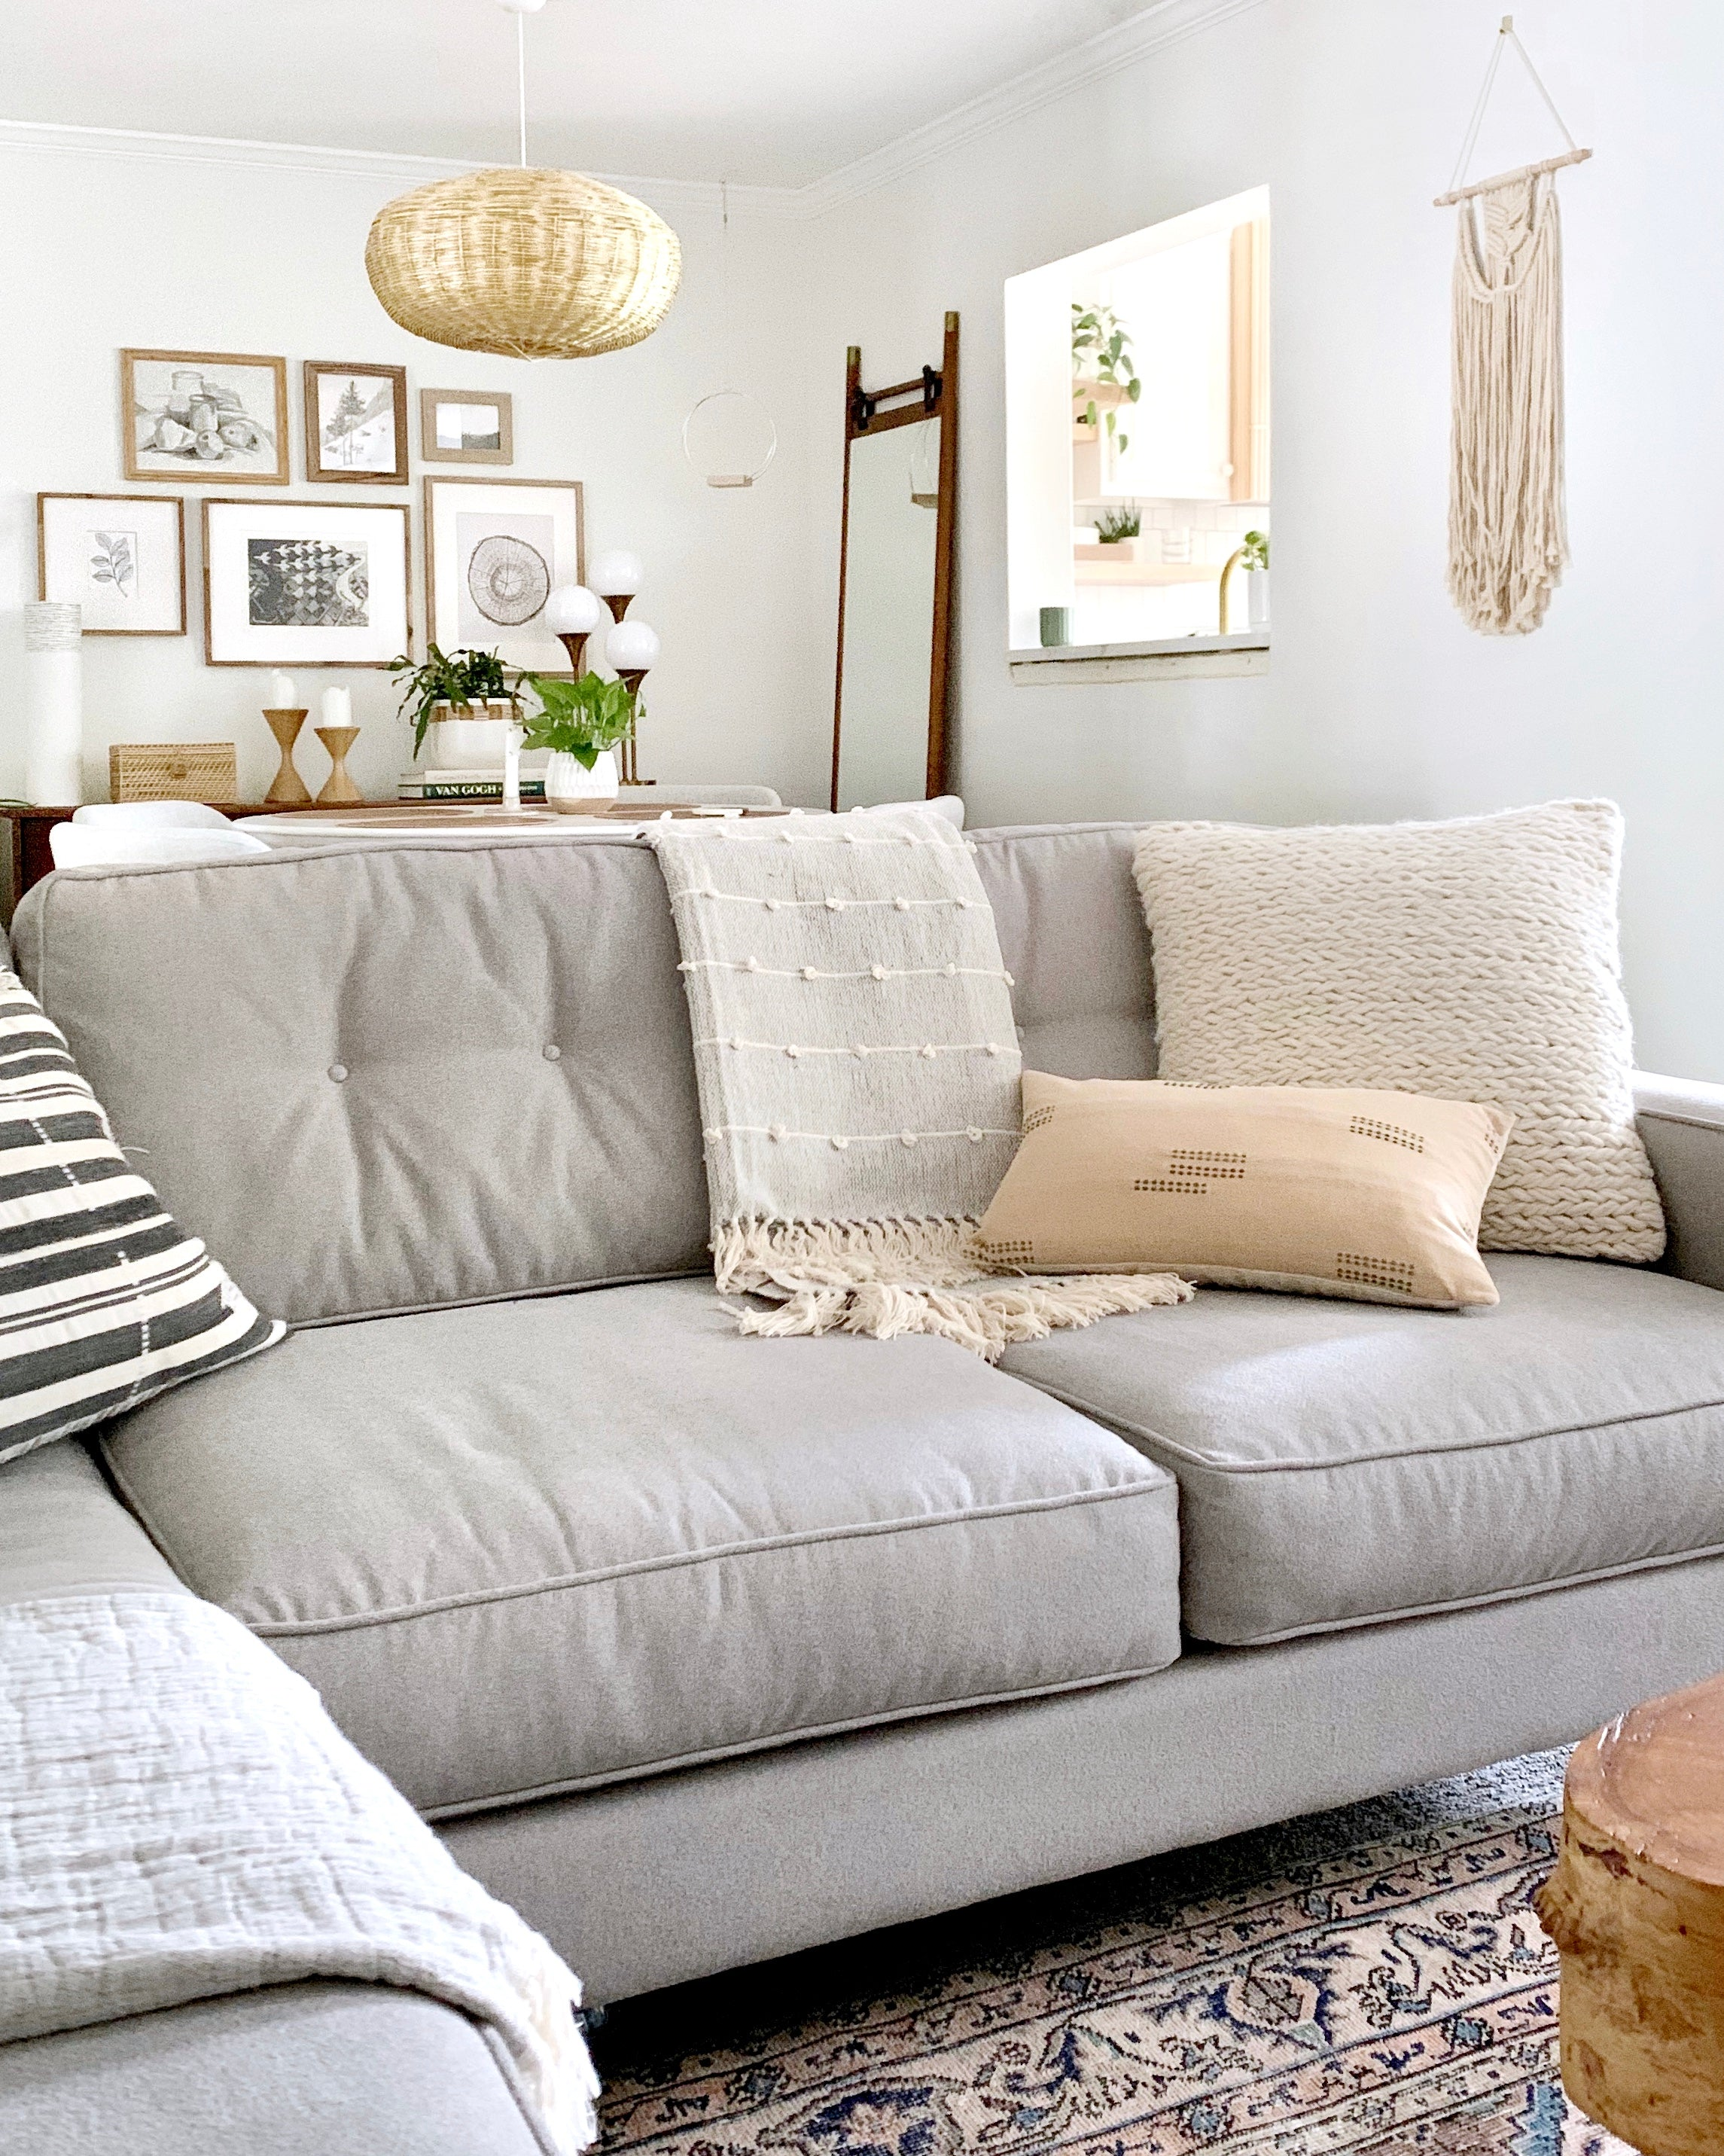 5 Ways to Style a Throw Blanket on a Sofa